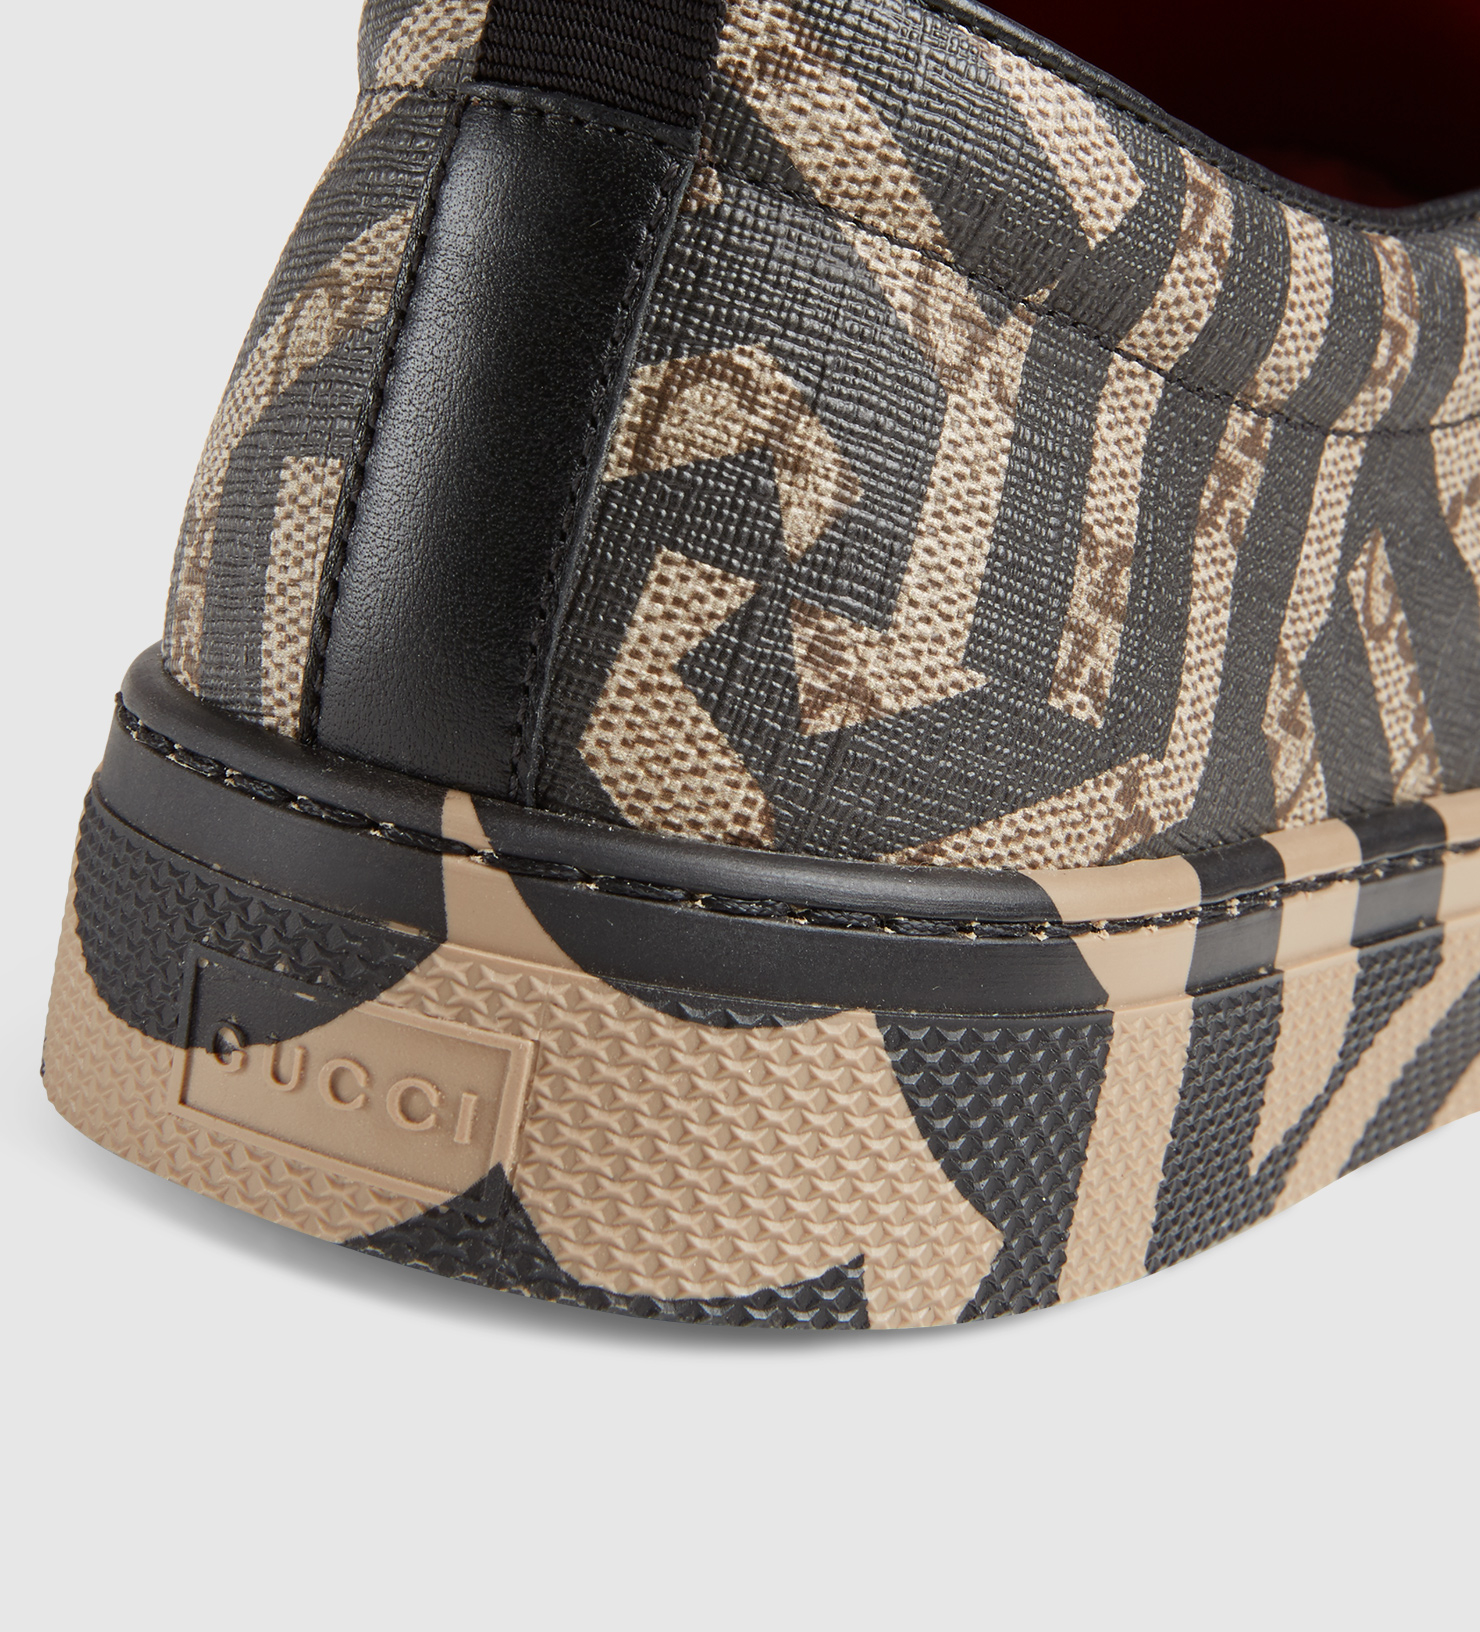 fdbc748d433 Lyst - Gucci Gg Caleido Sneaker in Brown for Men